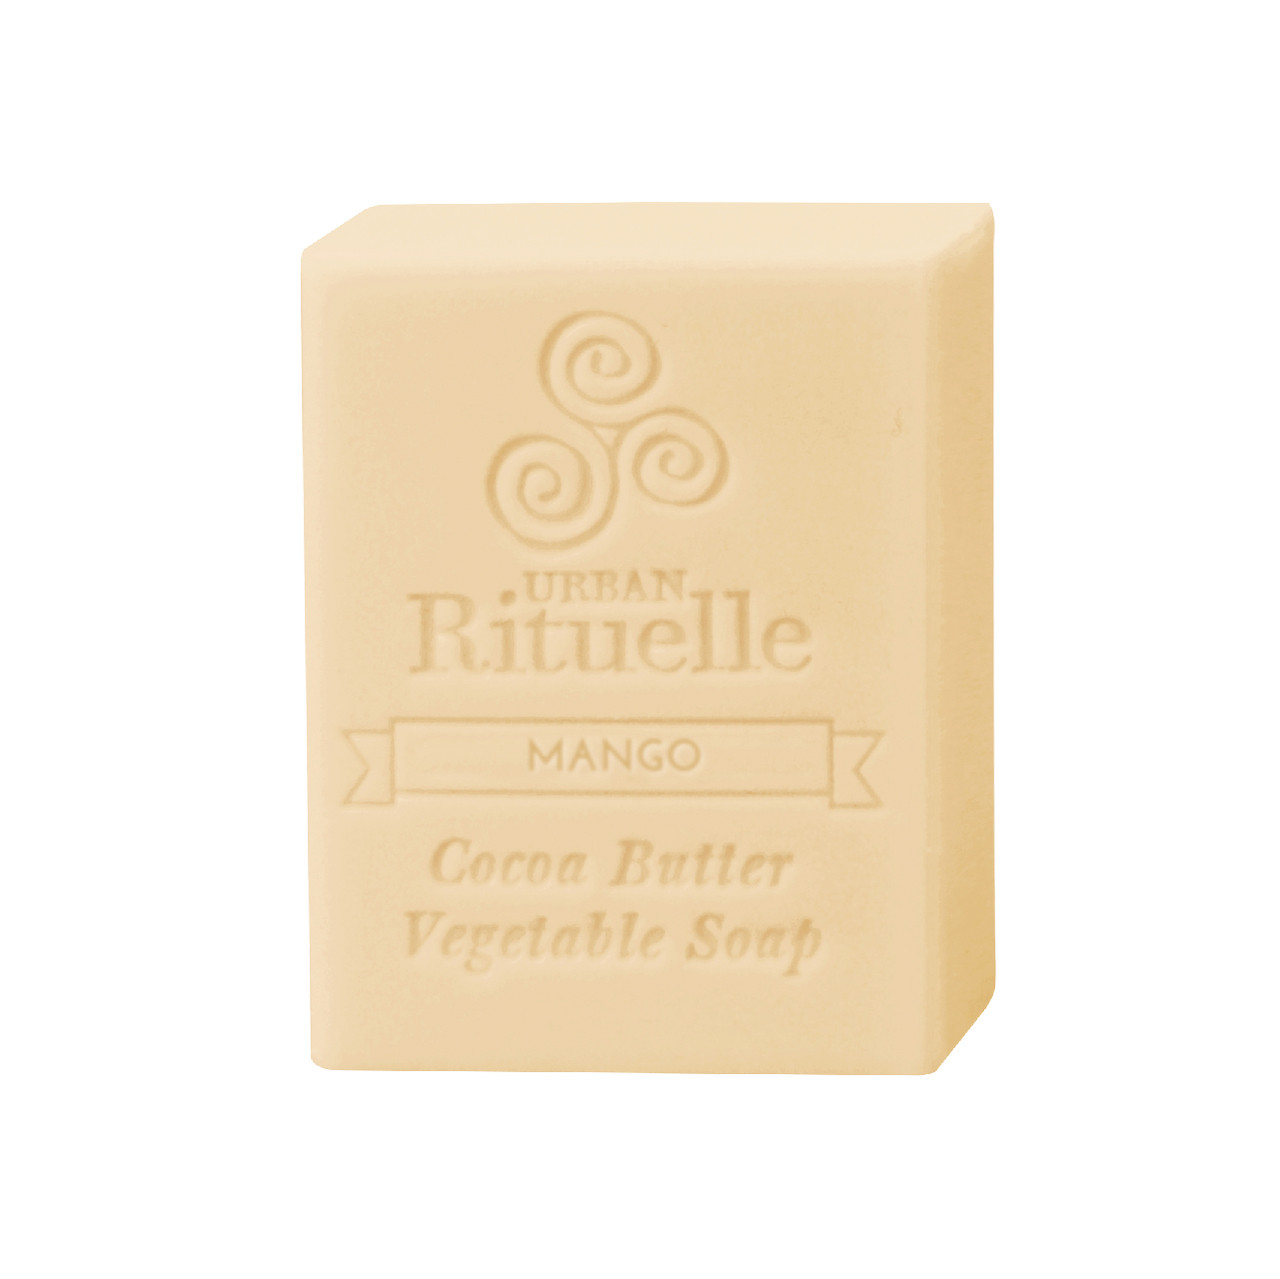 Organic Cocoa Butter Vegetable Soap - Mango - Urban Rituelle